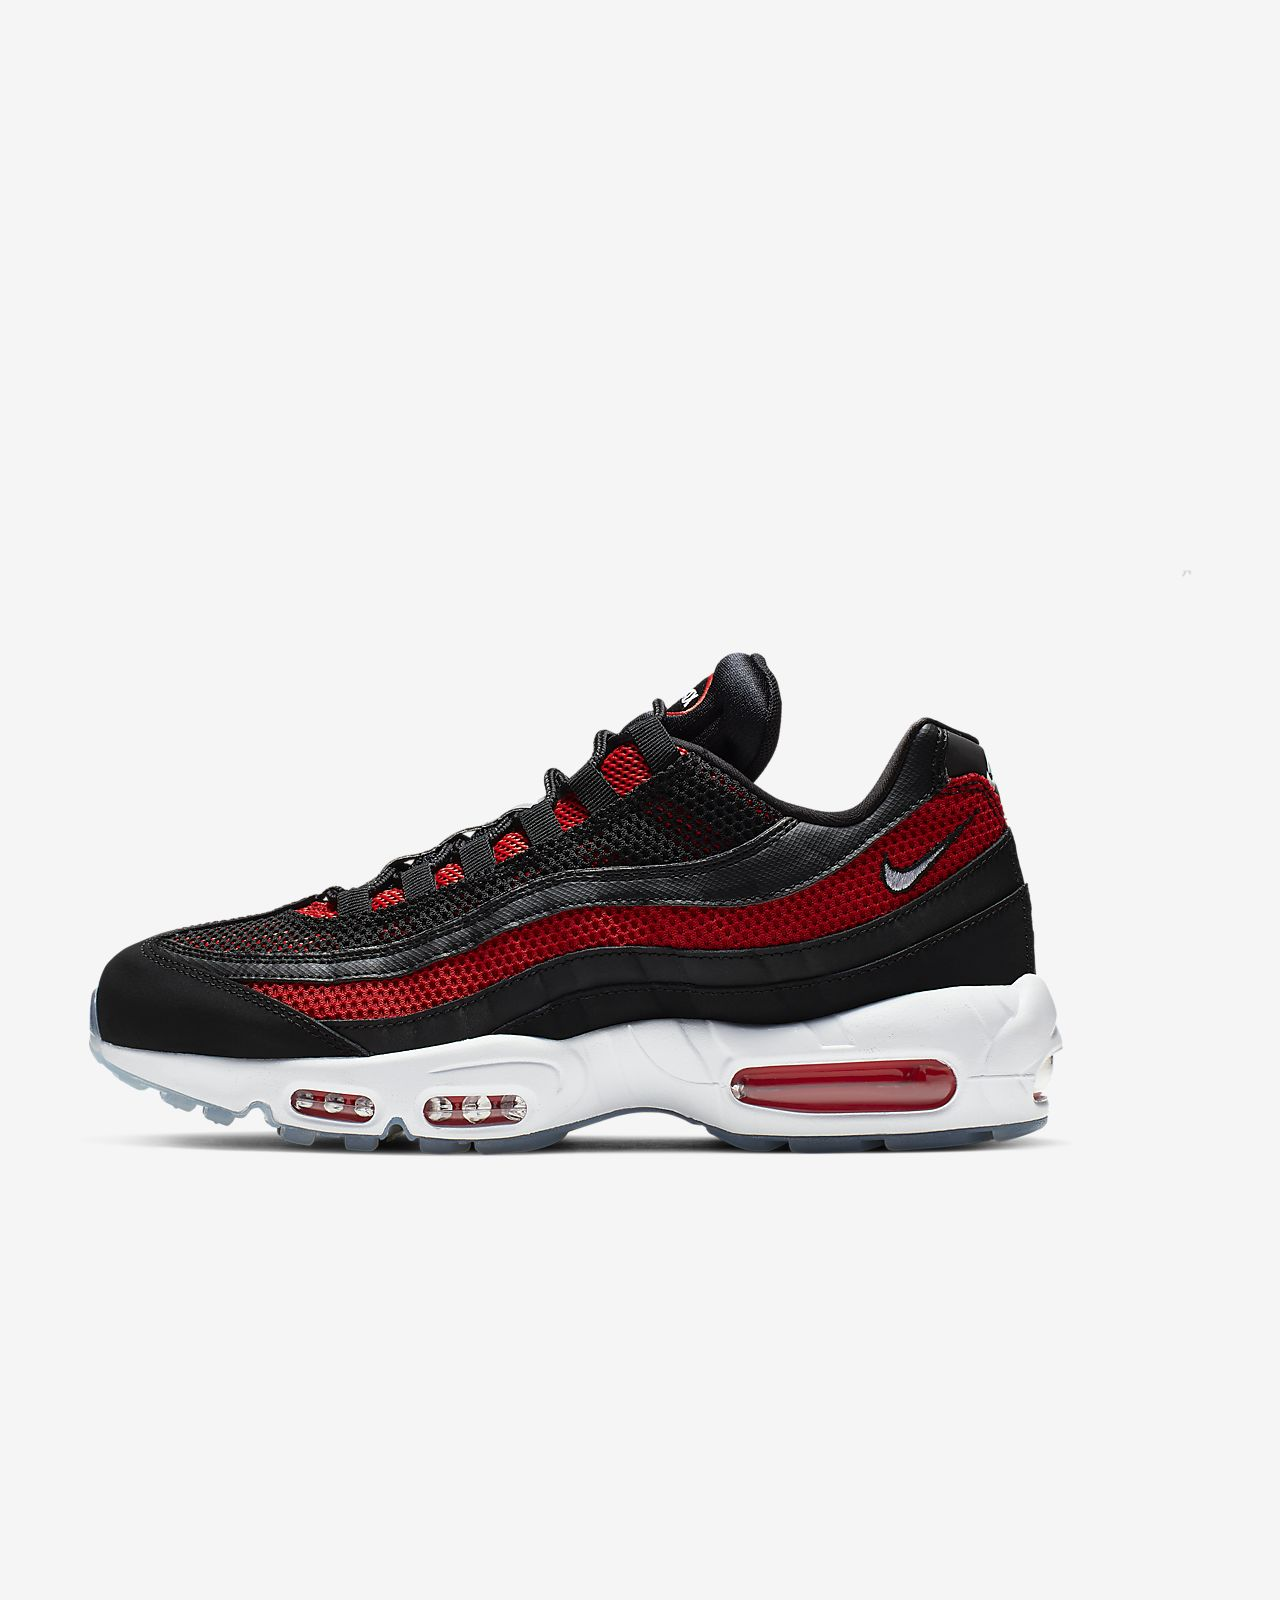 online retailer 9be18 b3674 ... Nike Air Max 95 Essential Men s Shoe